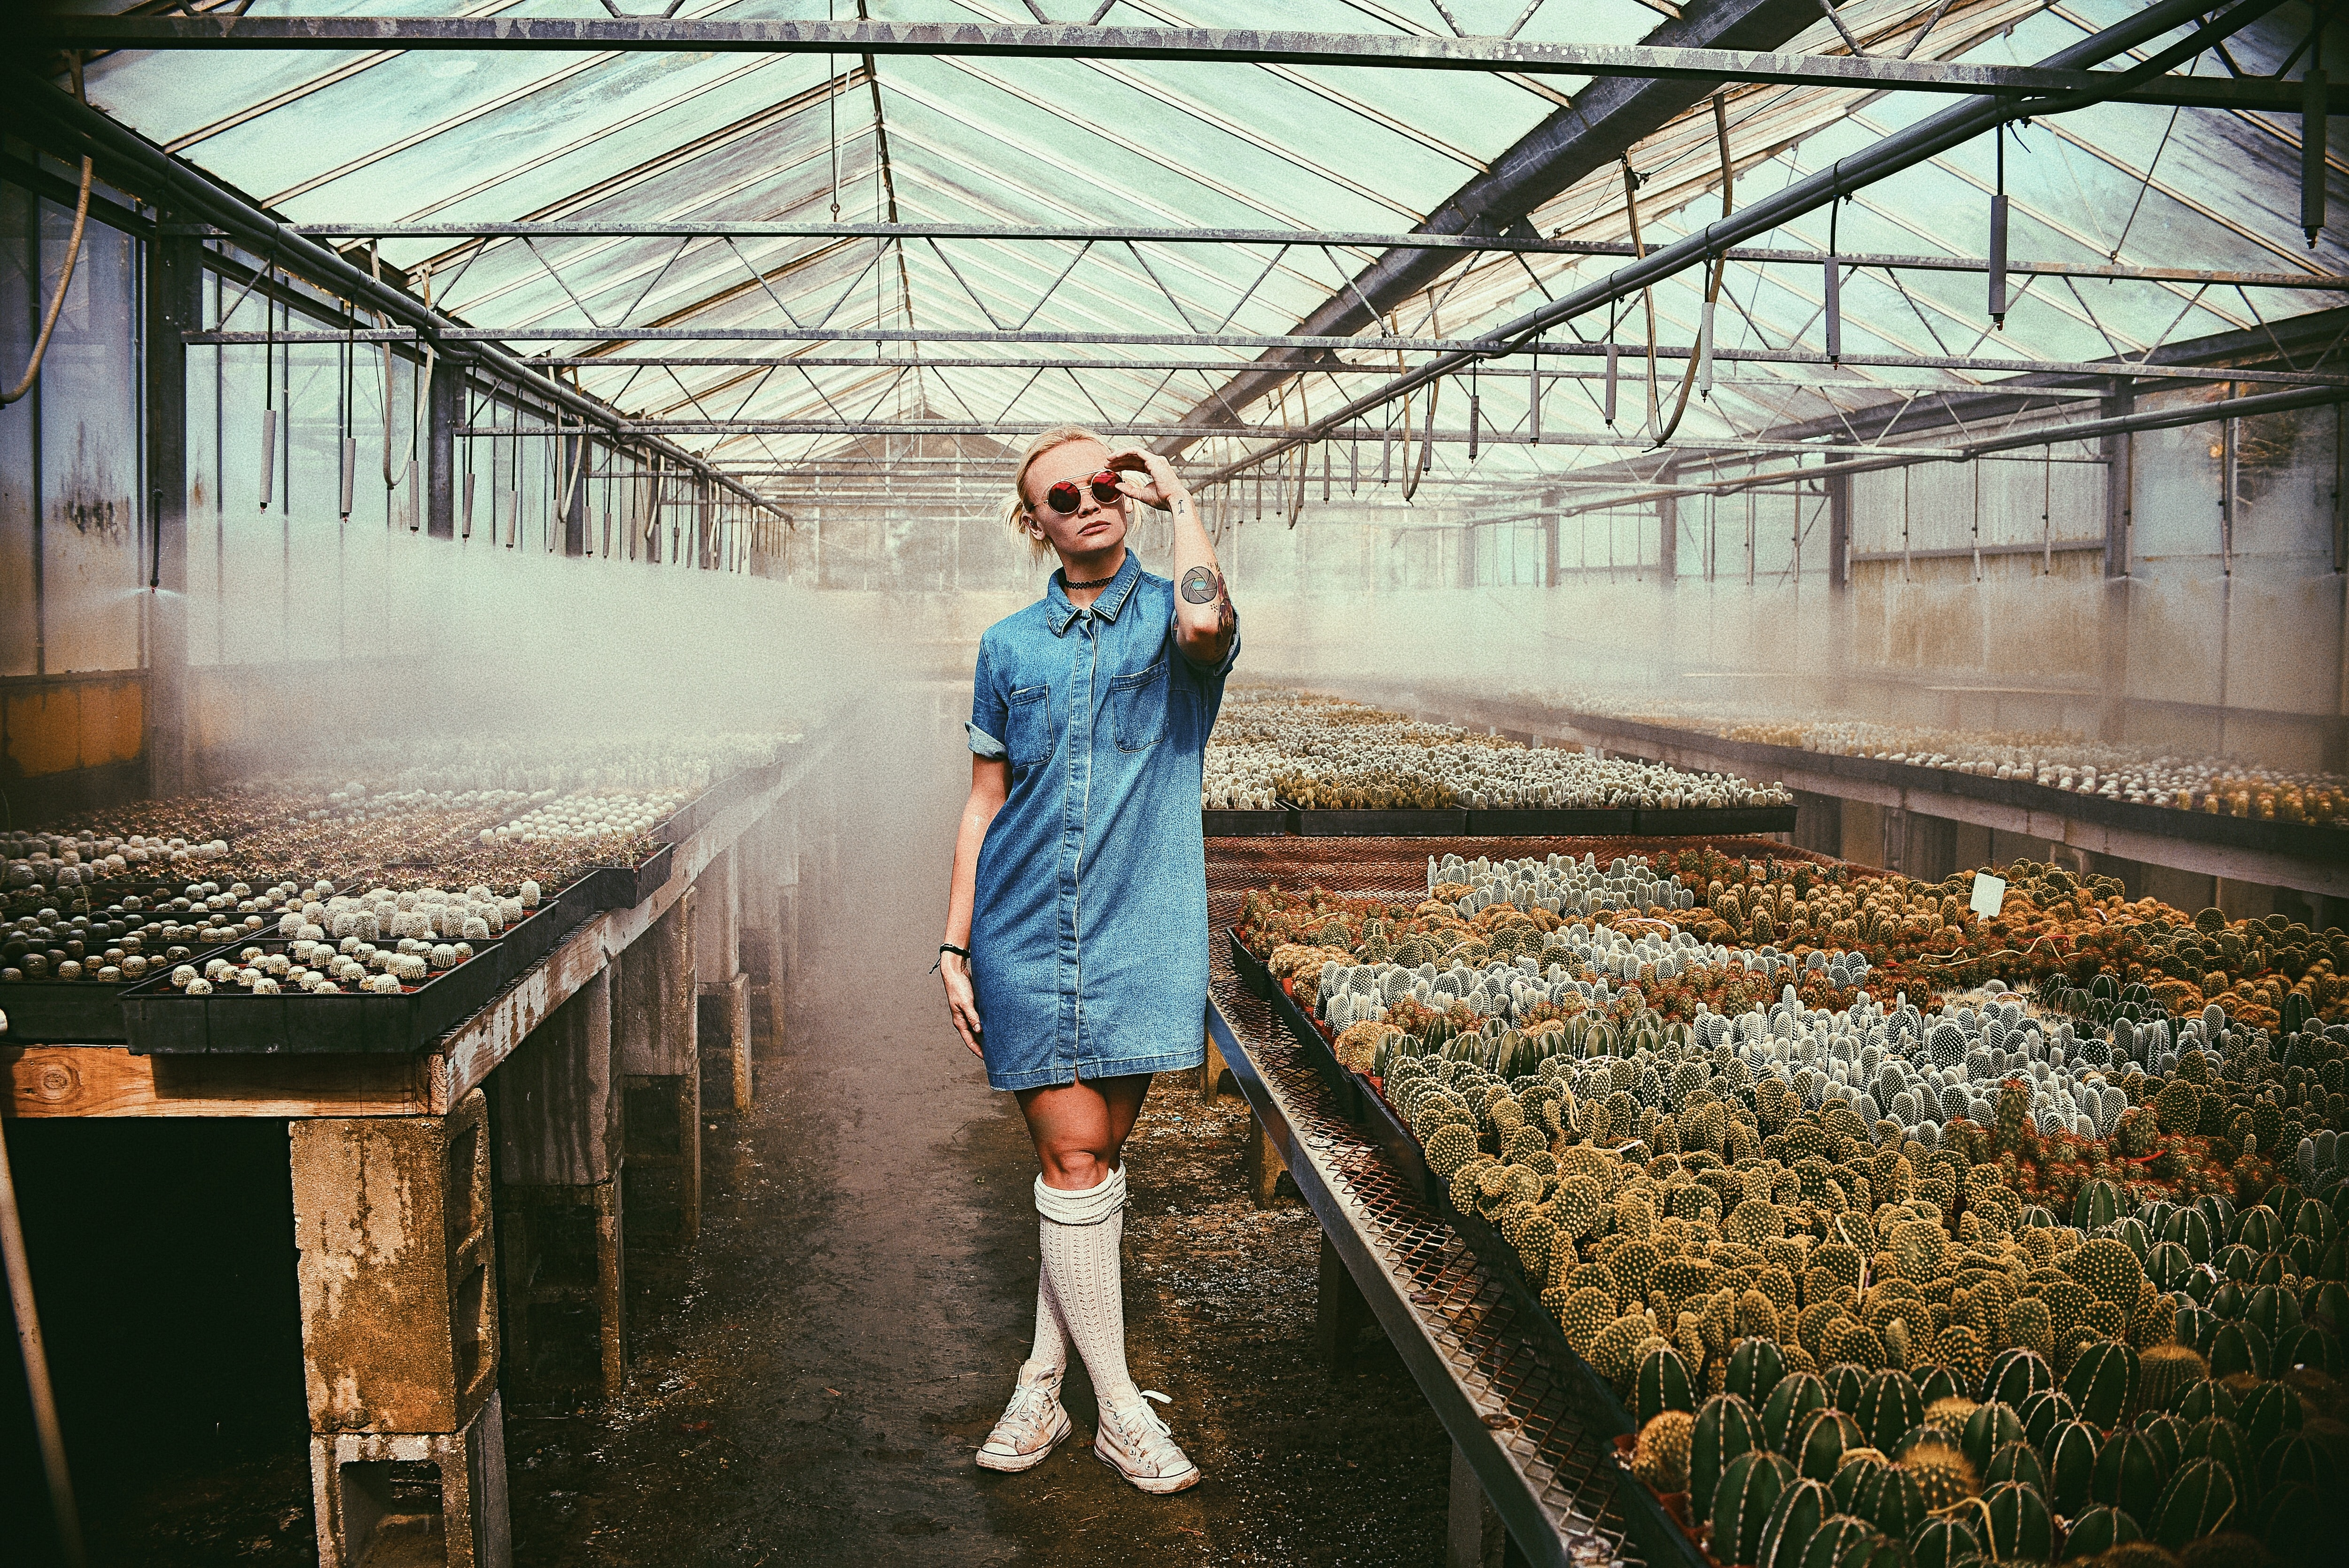 woman standing beside cacti holding sunglasses inside greenhouse